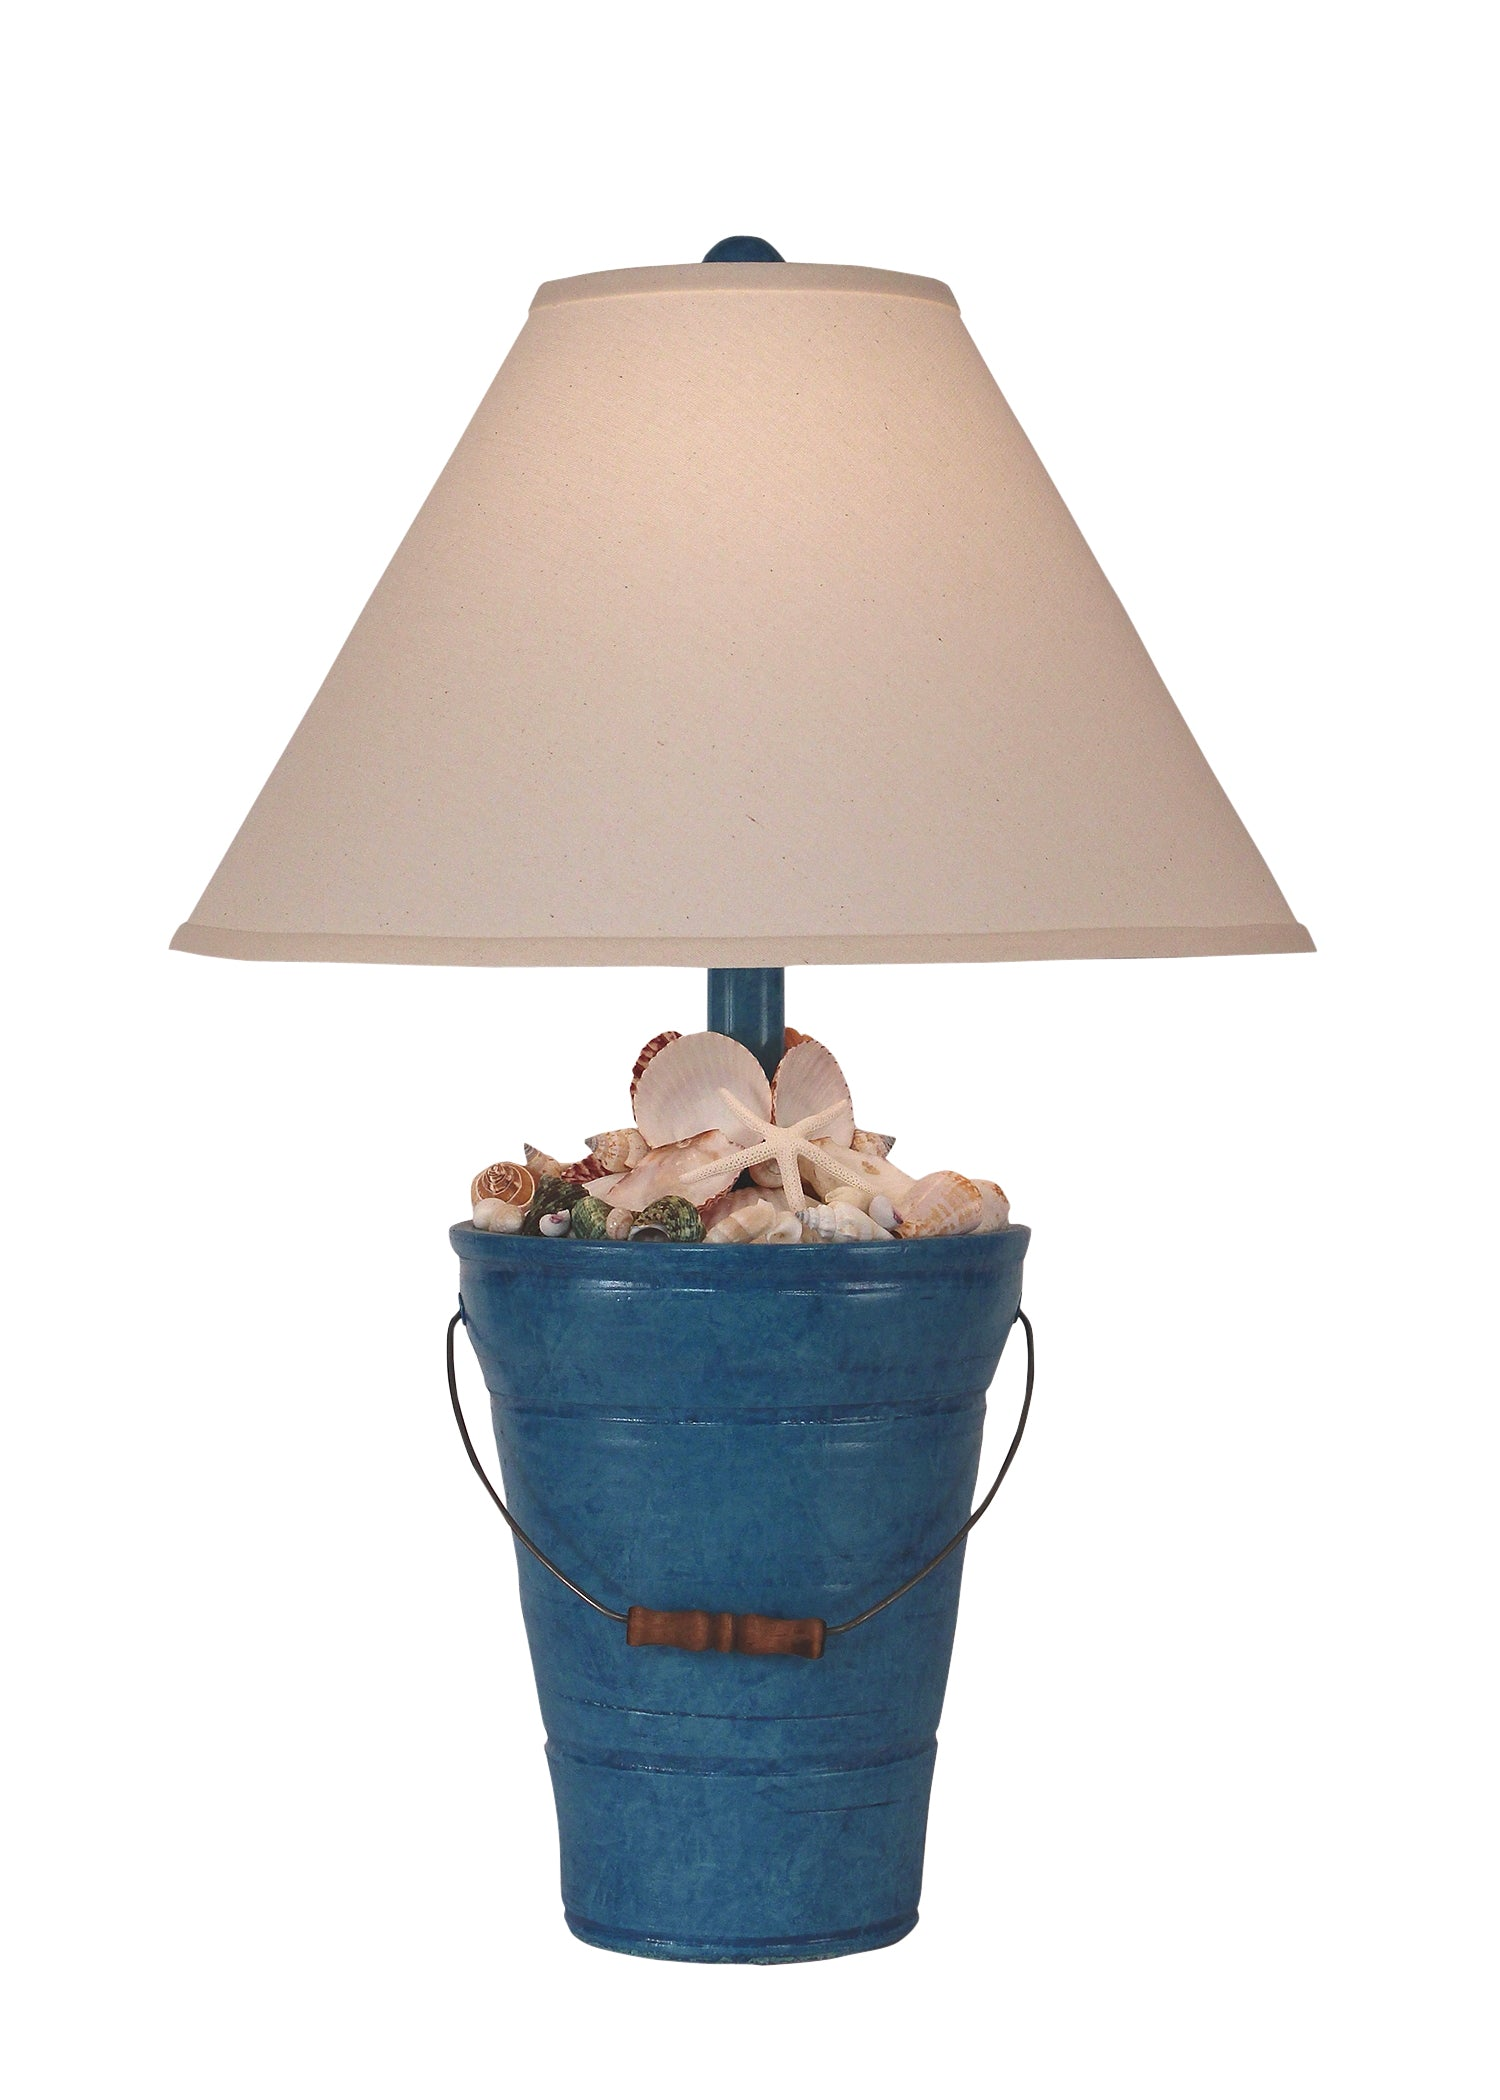 Deep Sea Bucket of Shells Table Lamp - Coast Lamp Shop